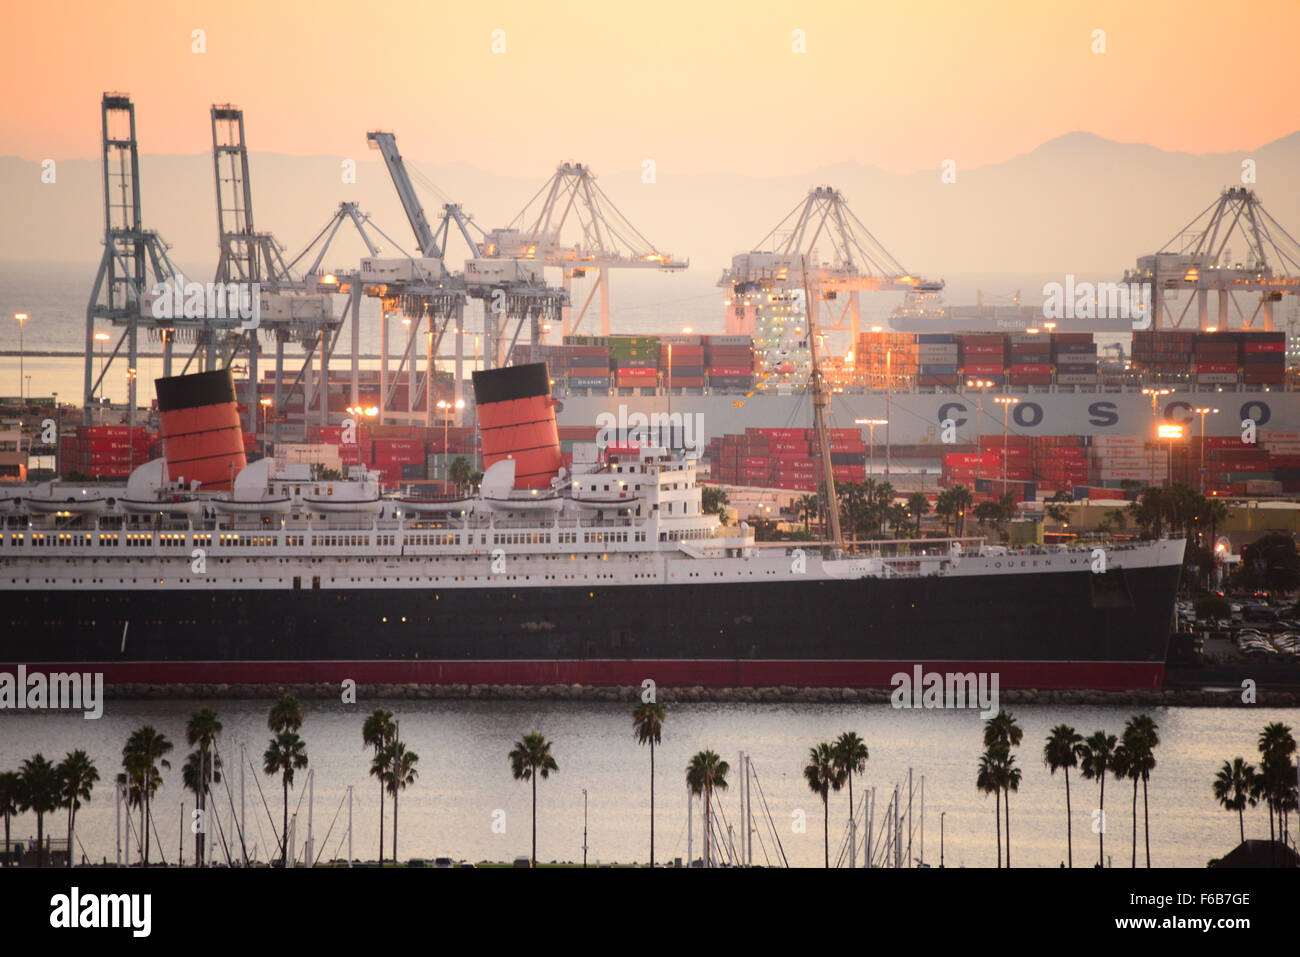 historic ocean going liner Queen Mary at permanent docking in Long Beach harbor California USA - Stock Image